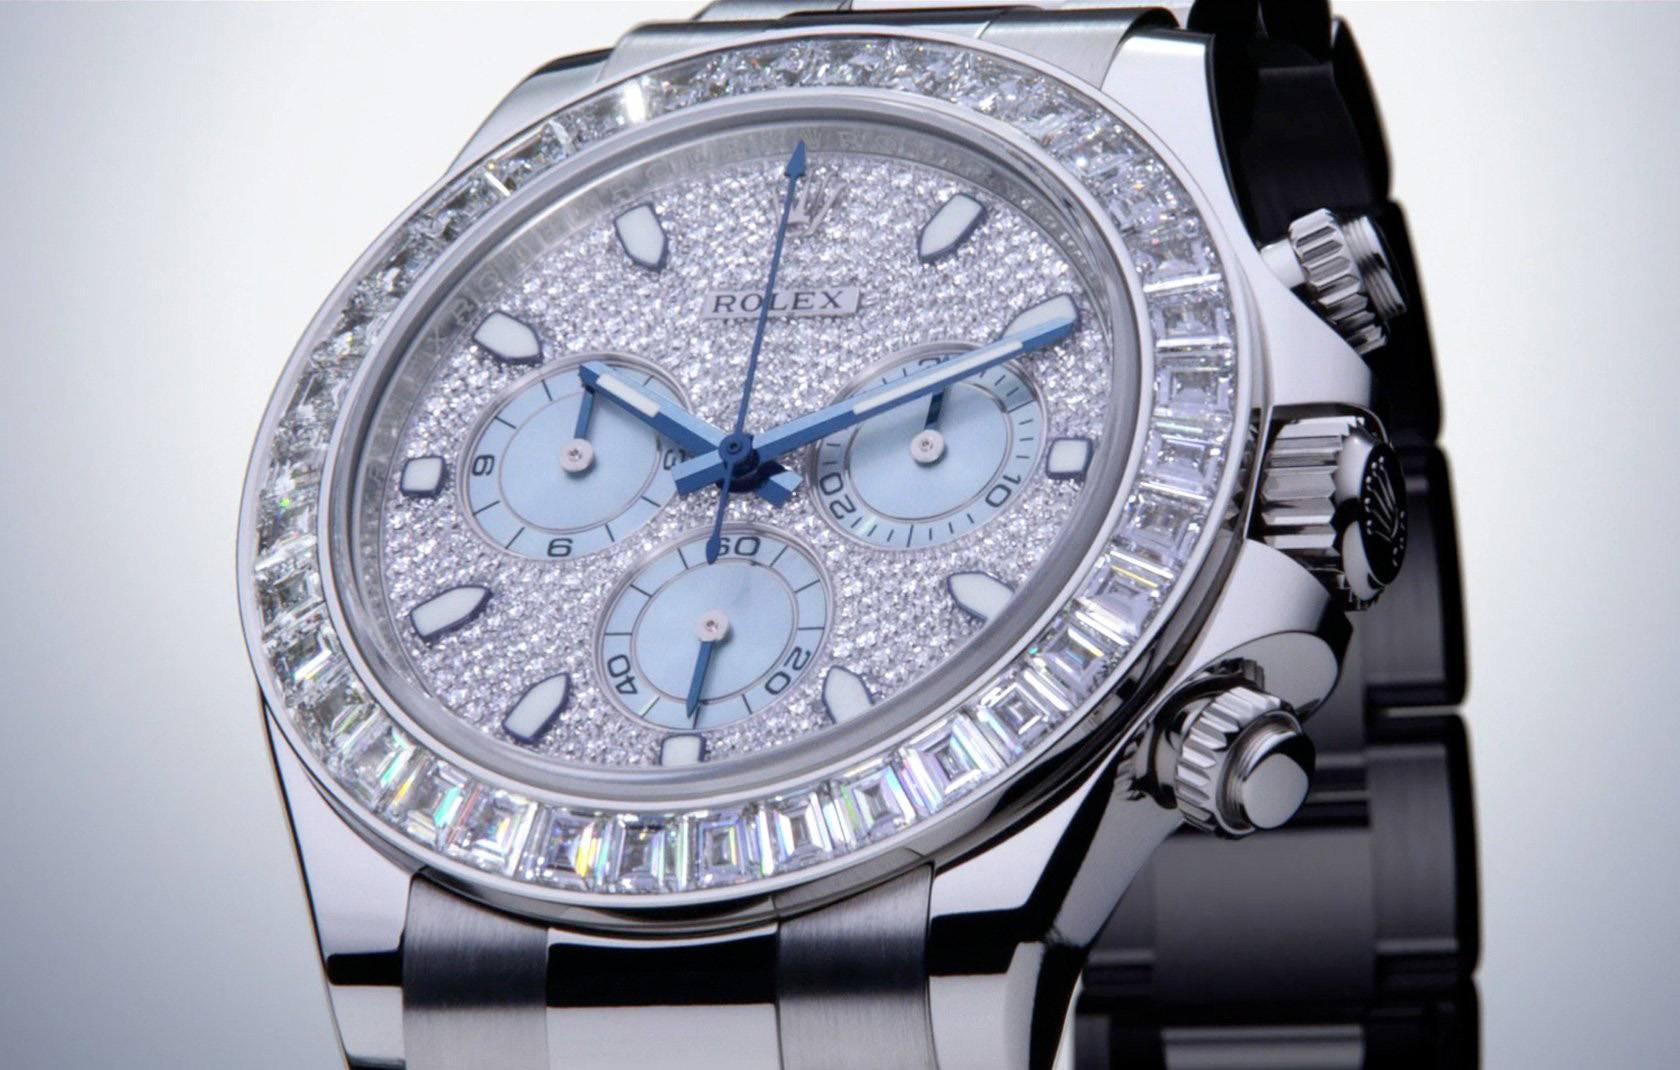 Rolex Cosmograph Daytona Platinum Diamond edition